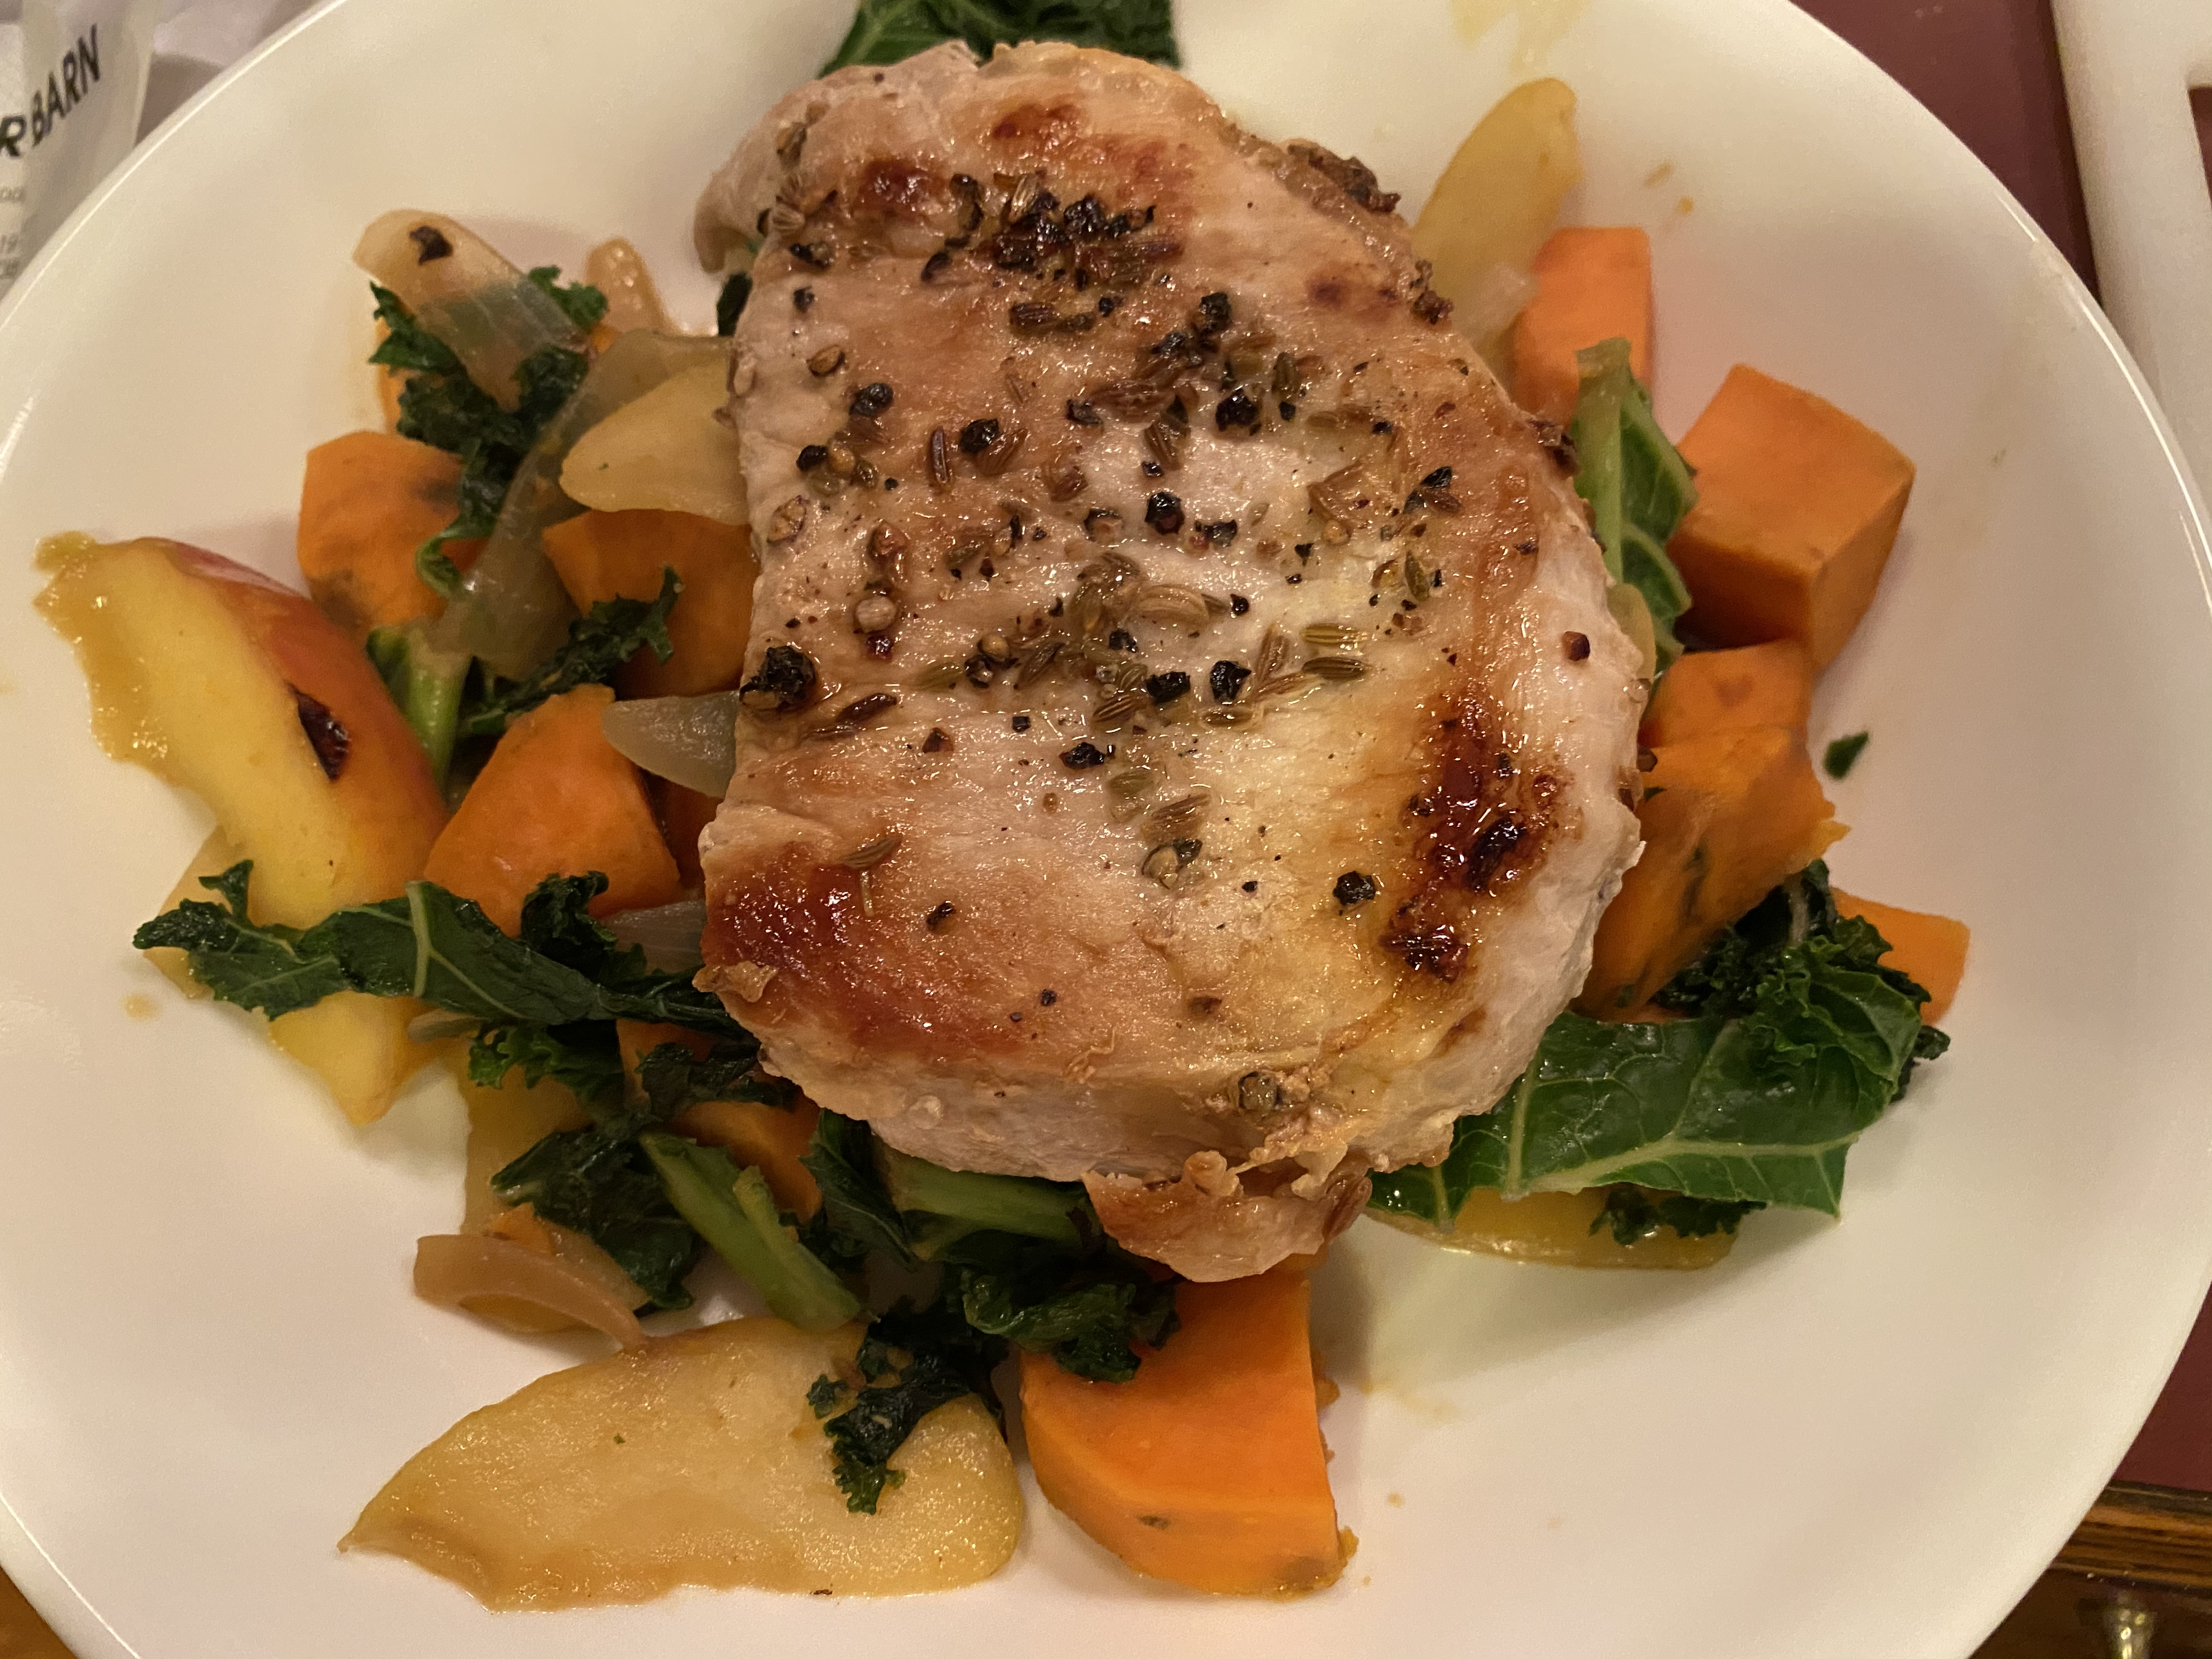 Fennel-Rubbed Pork Chops with Apple, Kale, and Sweet Potato Ellie Krieger